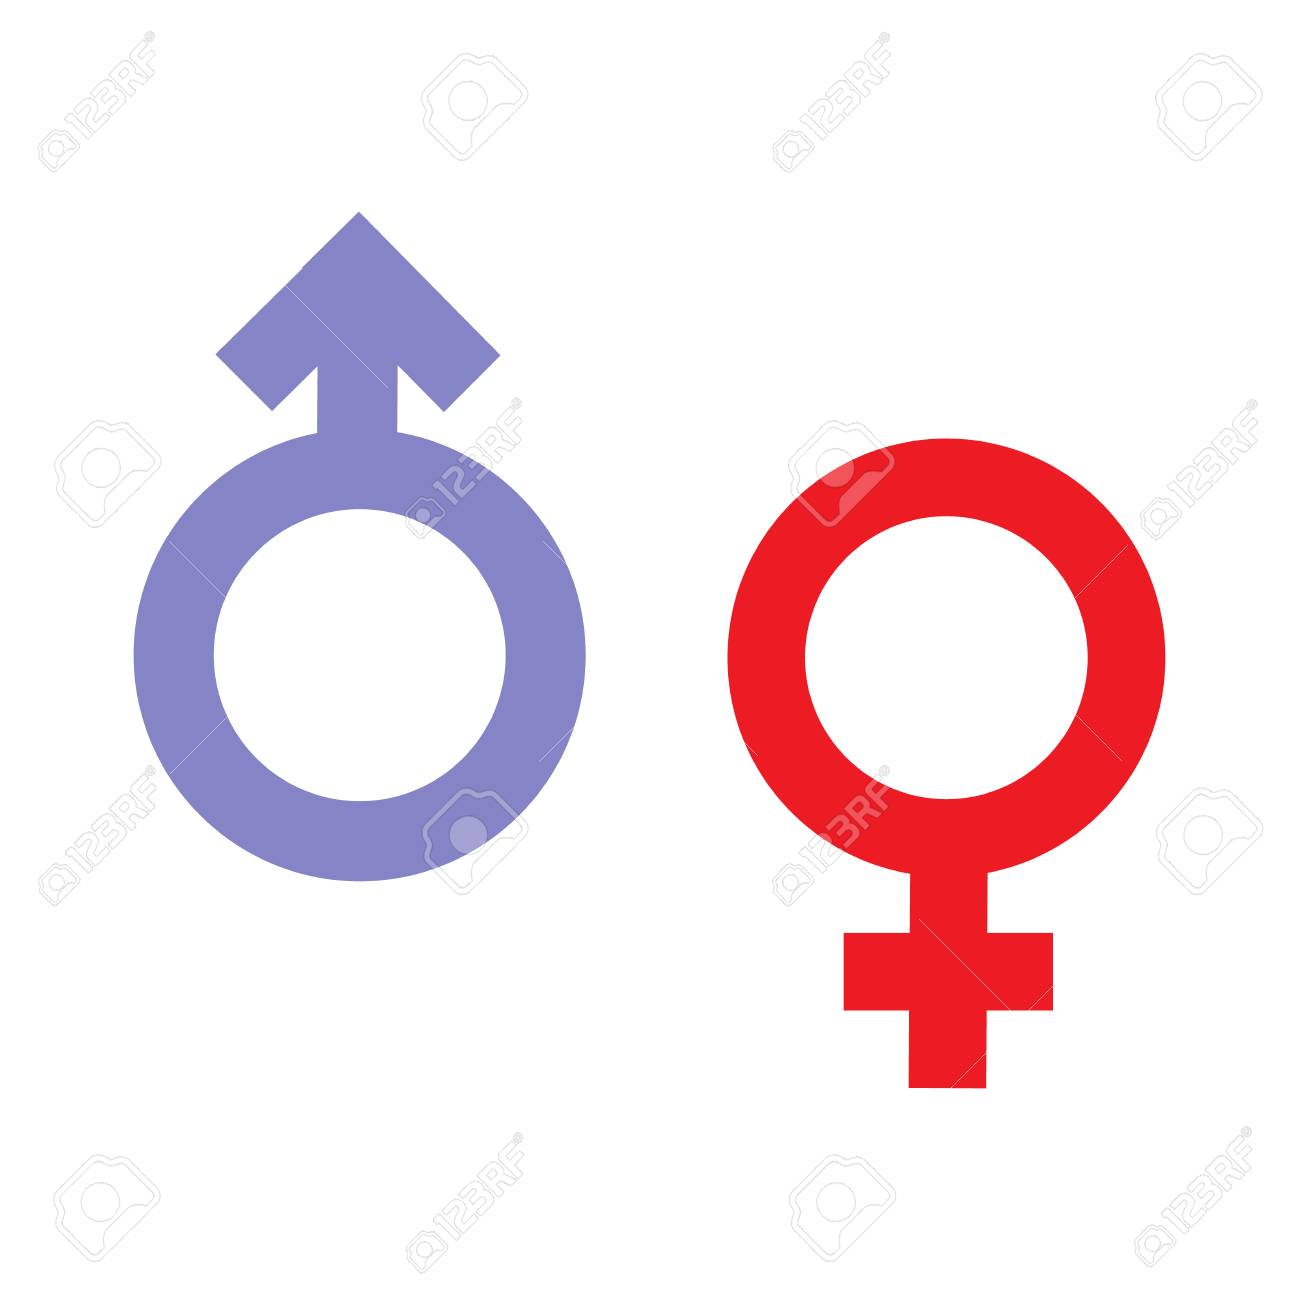 Gender Inequality And Equality Icon Symbol Male Female Girl